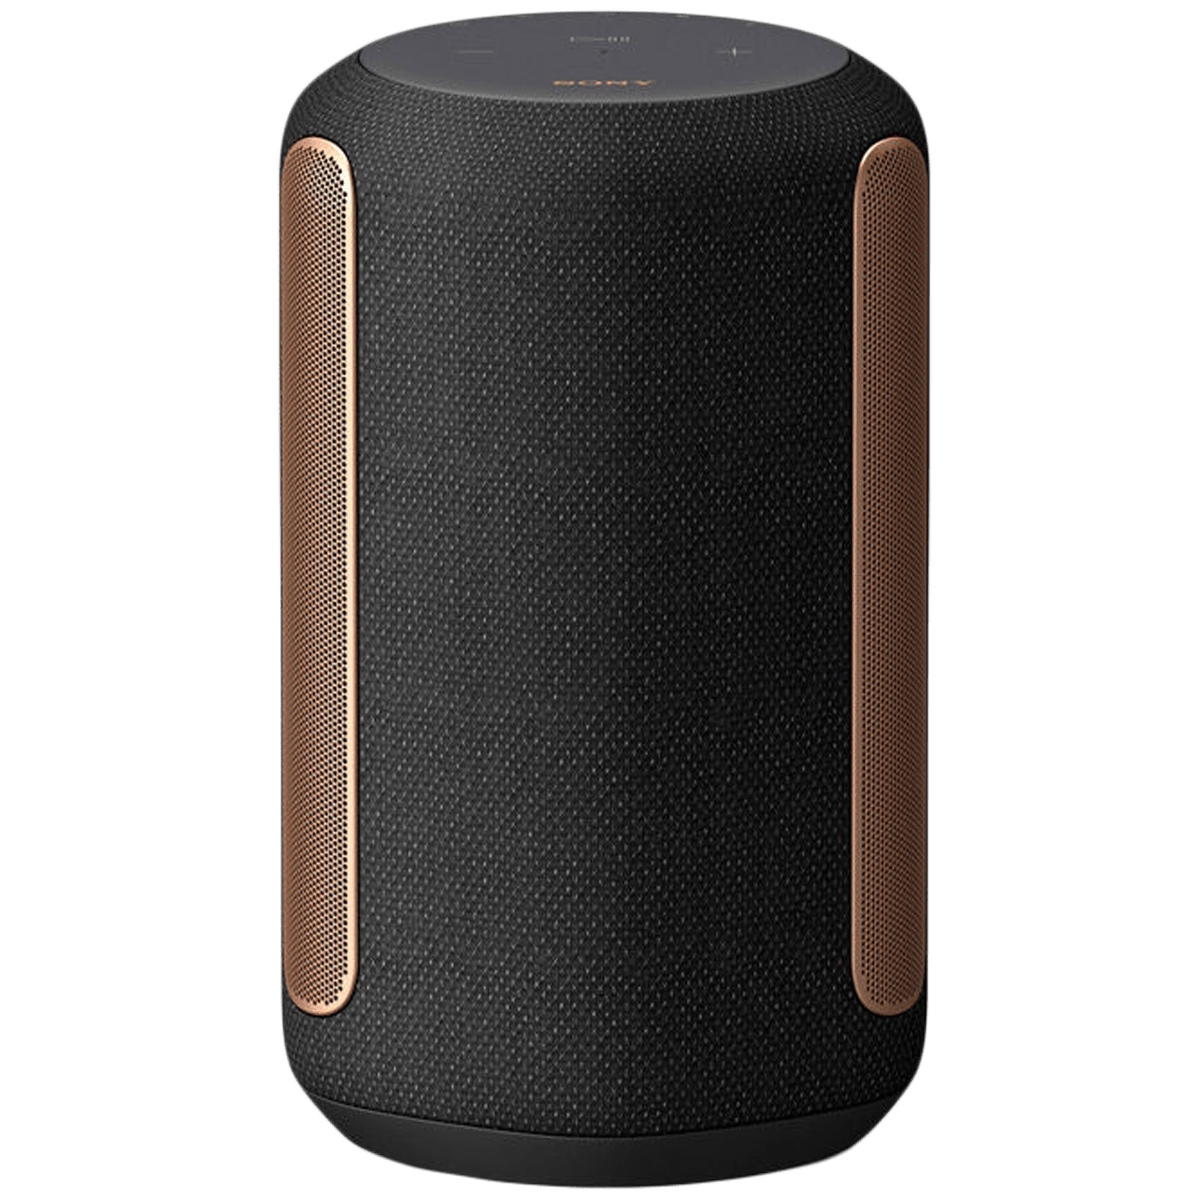 Sony 20 Watts Google Assistant Smart Speaker (Built-In Chromecast, SRS-RA3000, Black)